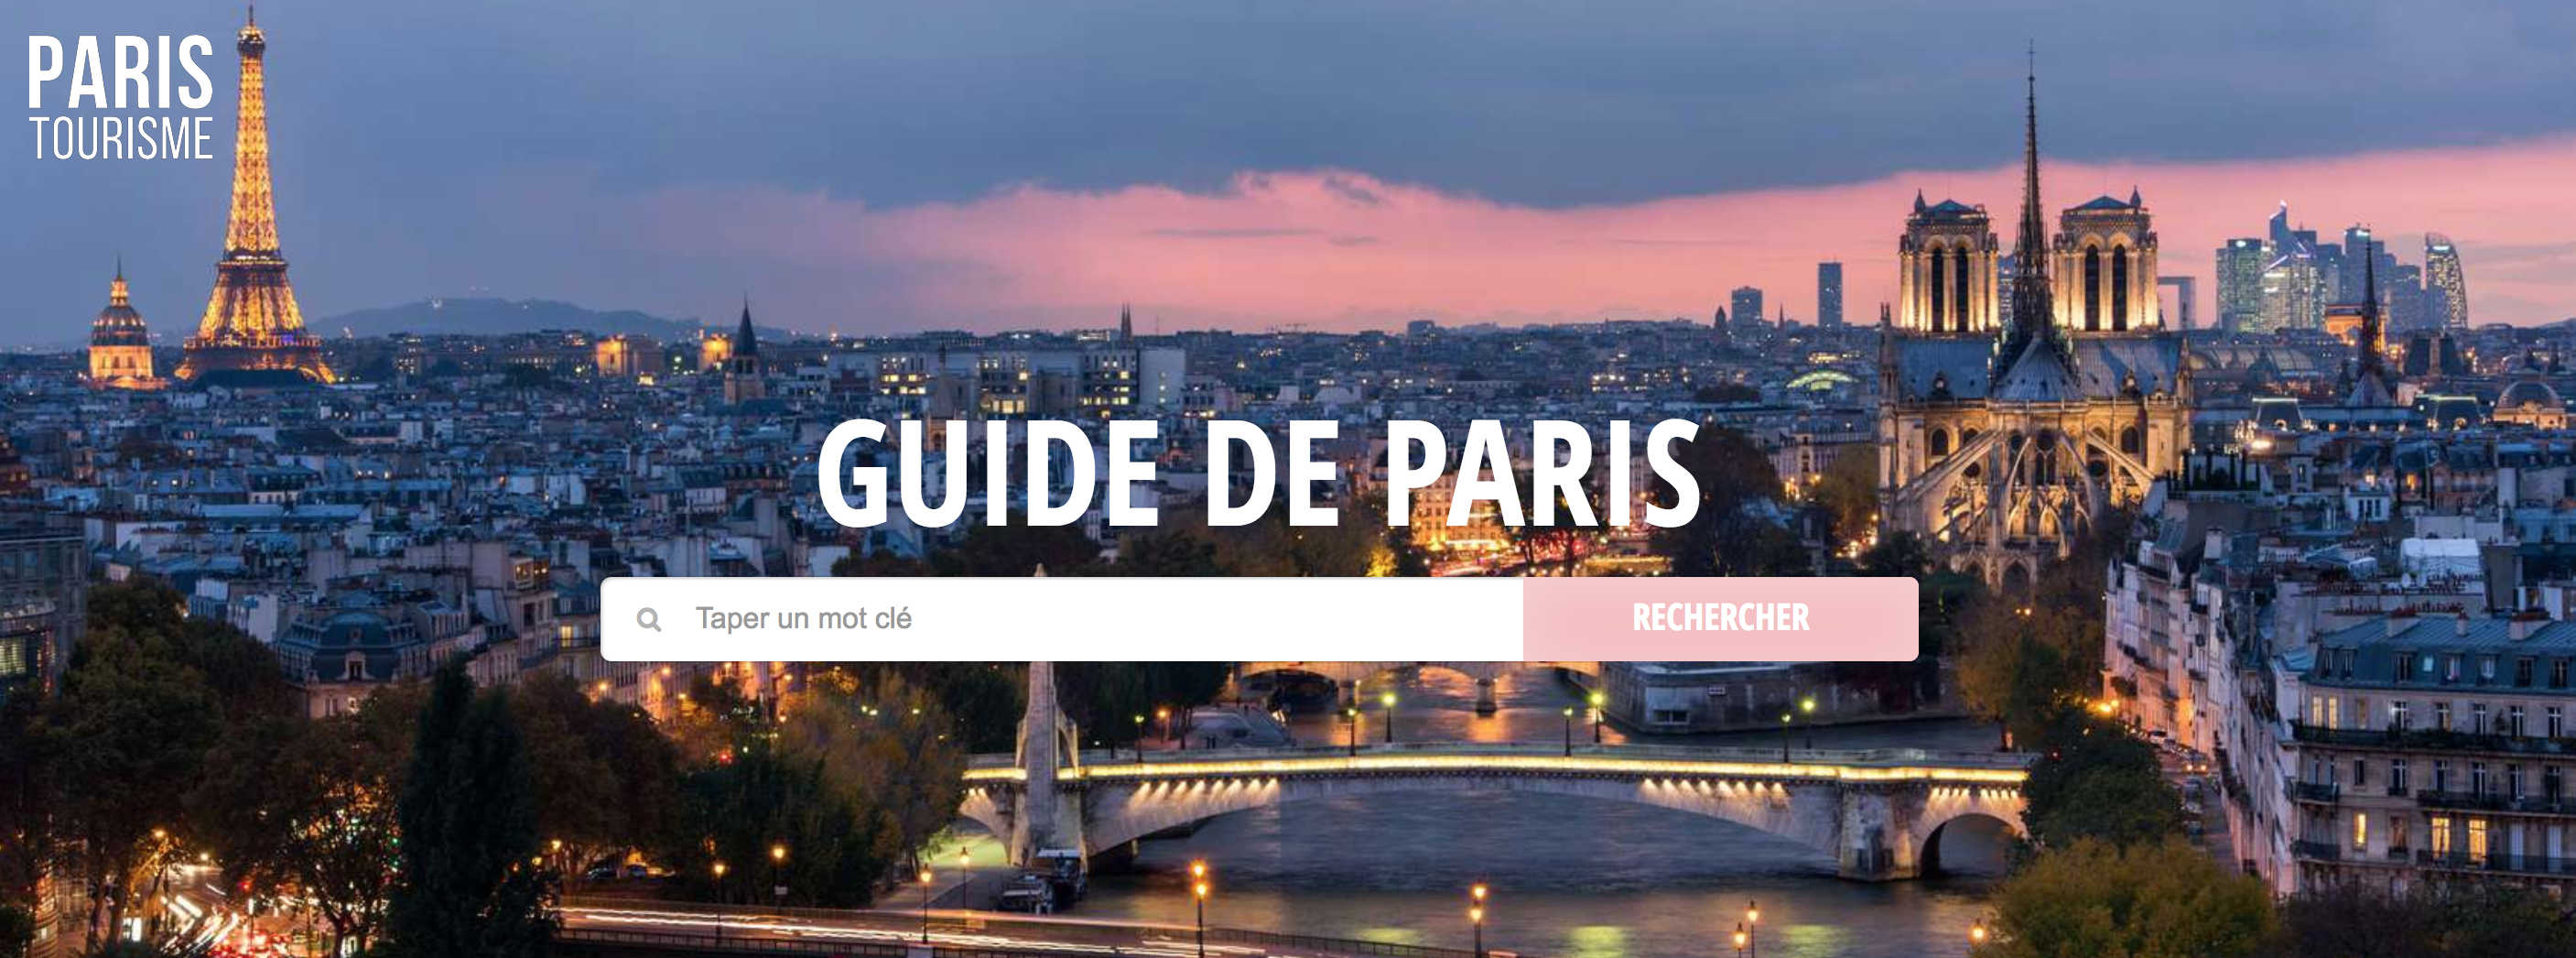 Guide de Paris